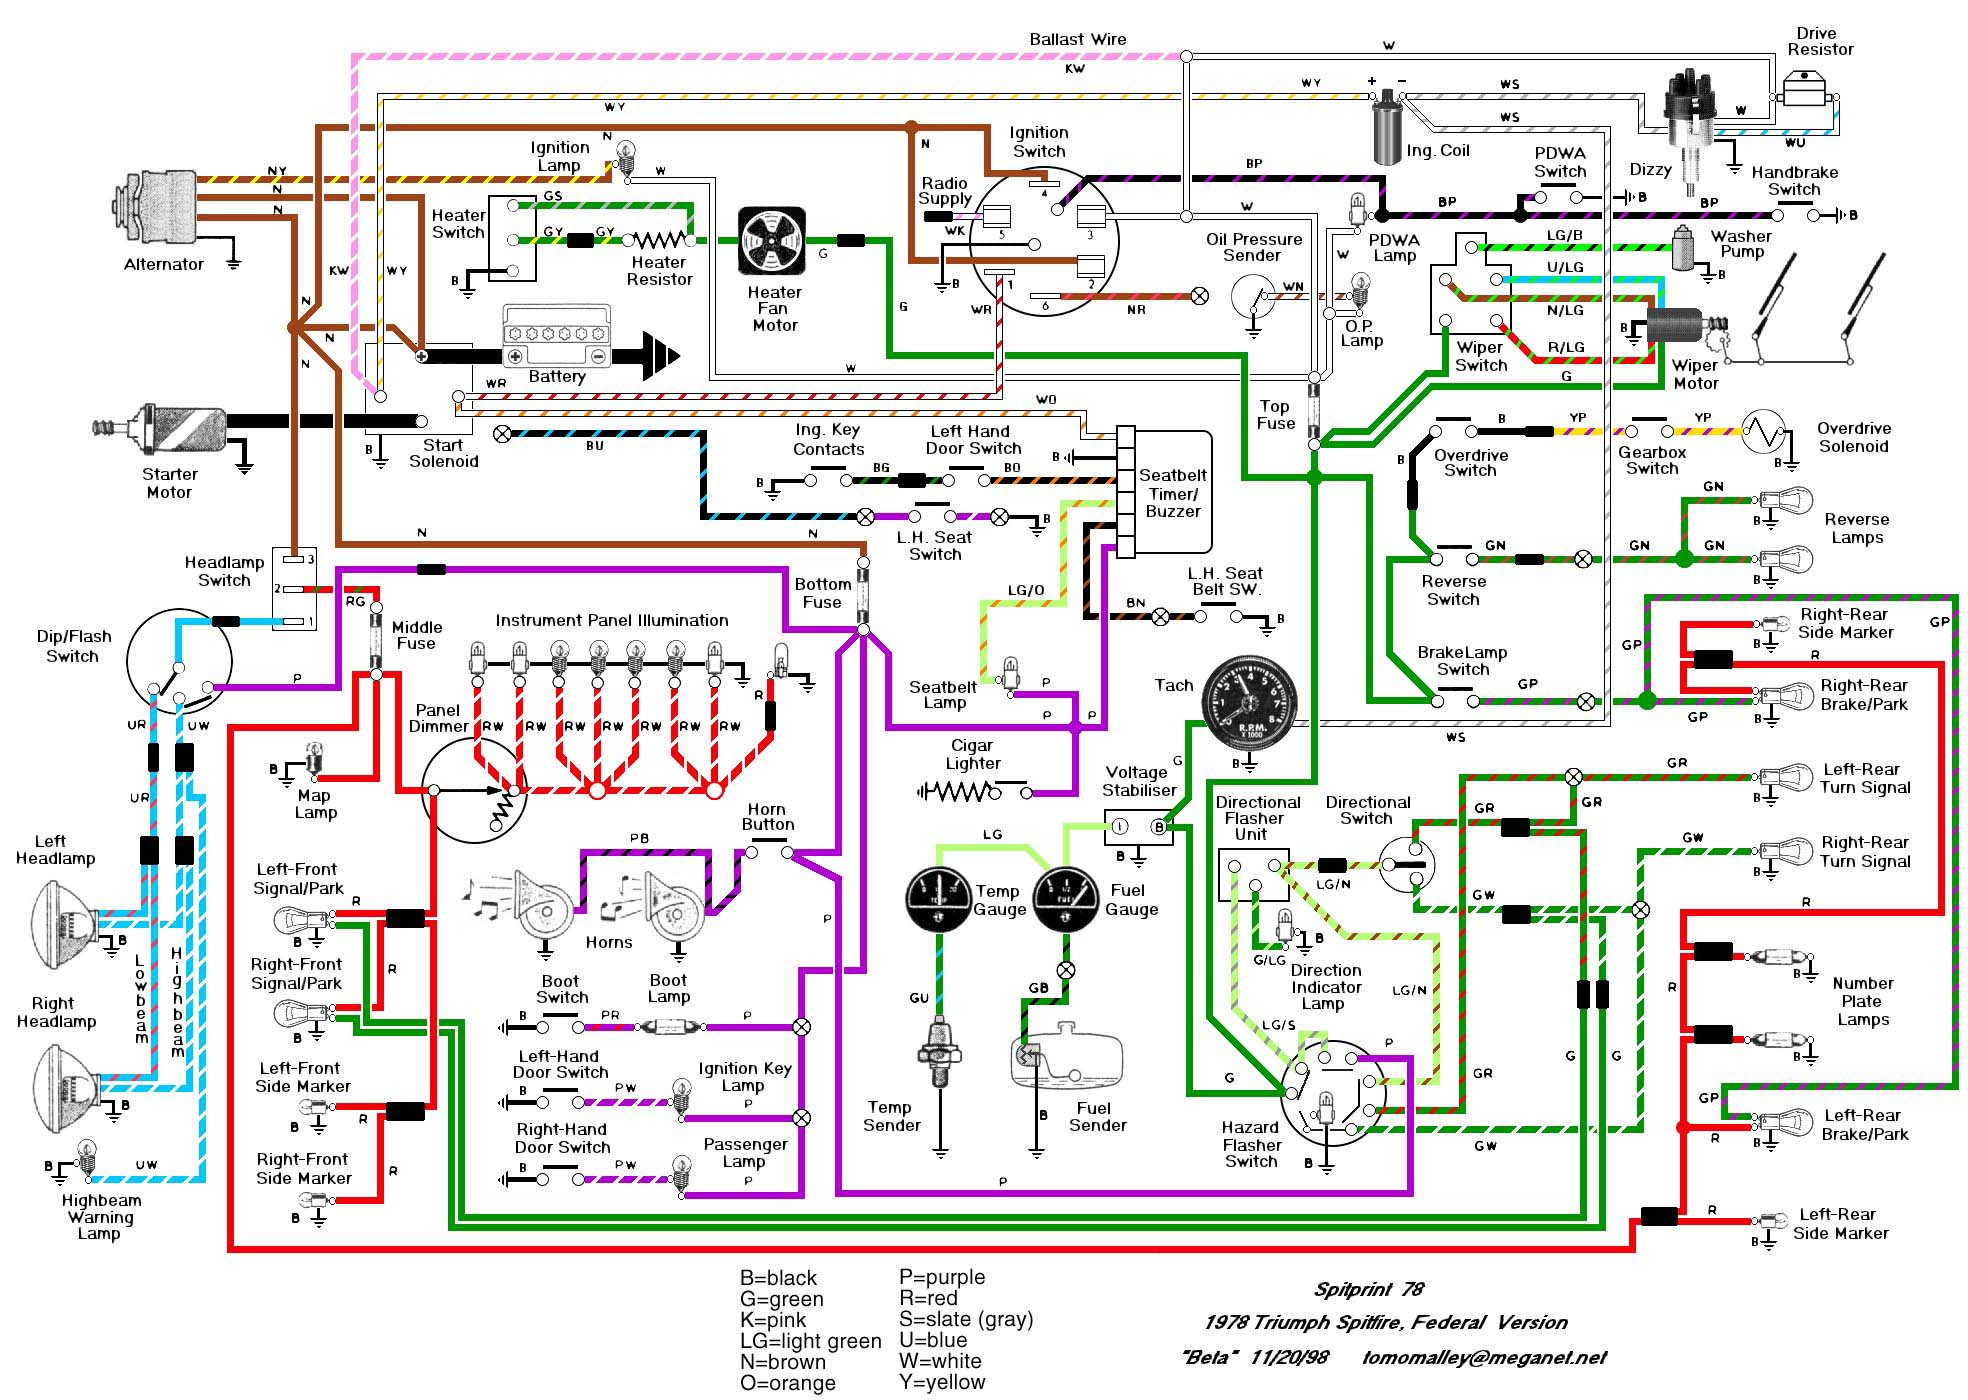 pontiac trans sport wiring diagram with Underneath Doo Wop Styling on 1998 Ford E350 Diesel Van Fuse Box Diagram further 2001 Pontiac Montana Heater Hose Diagram as well 2000 Jeep Engine Parts furthermore X  Radio Wiring Diagram moreover 1380332 Hvac Fan Blower Motor Blasts 4 Low 2 3 Dont Do Much You Too.